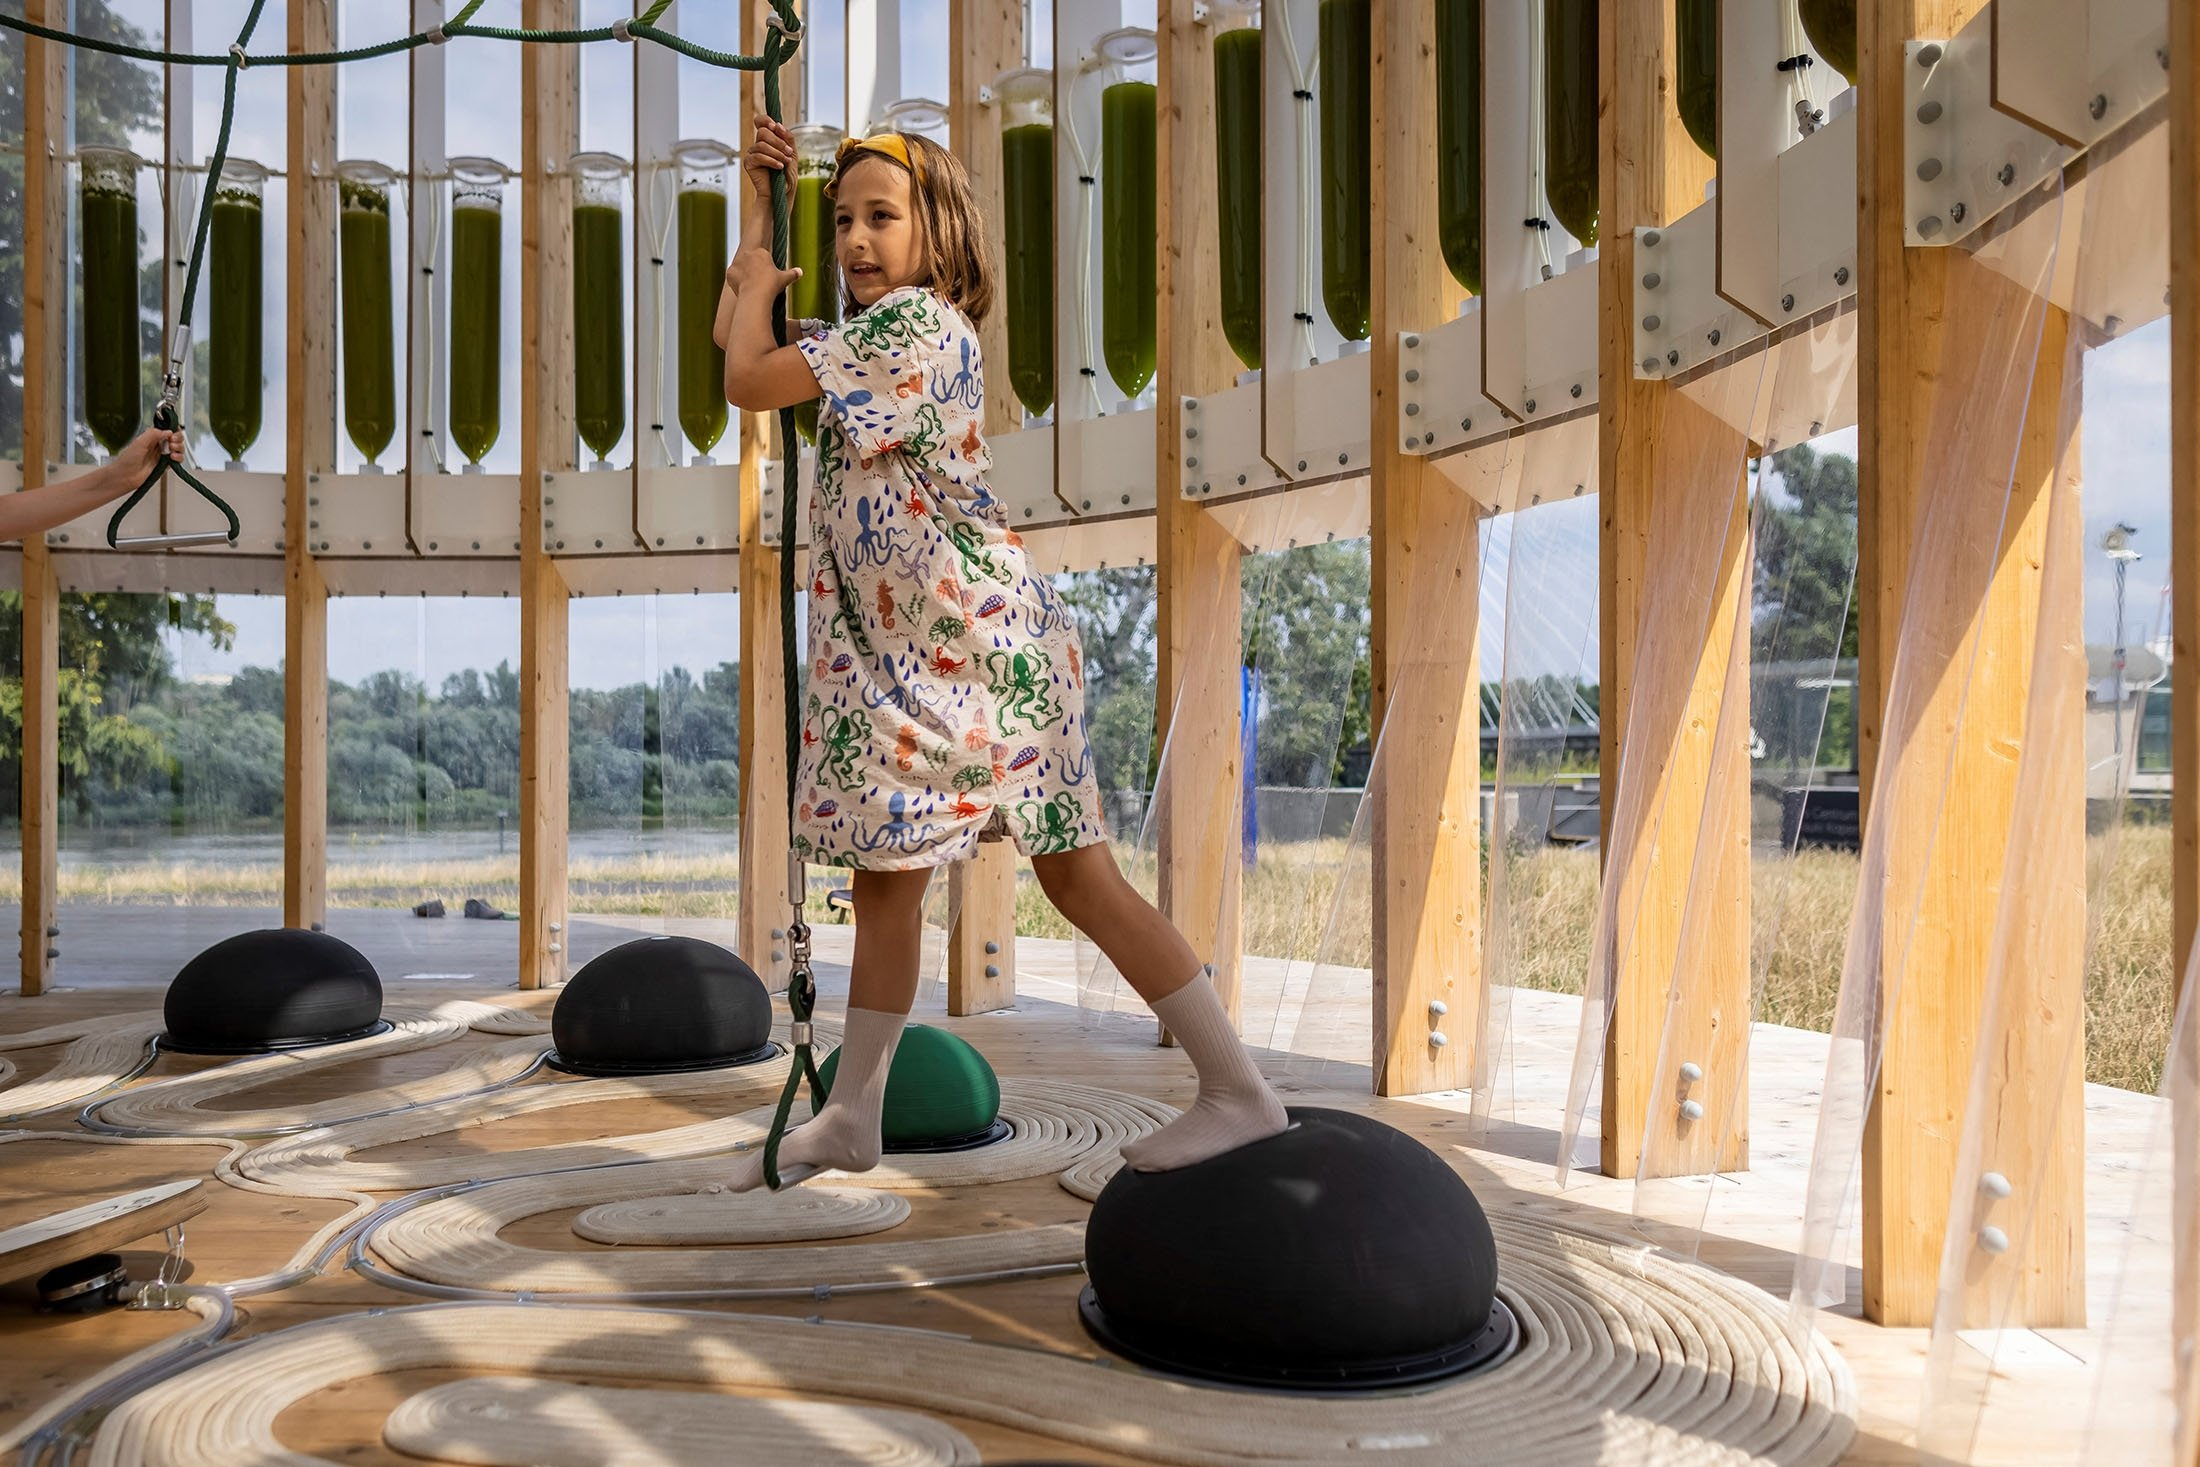 Nine-year-old Anielka plays in an AirBubble, an innovative playground providing clean air thanks to algae that absorbs pollutants and CO2, in Warsaw, Poland, July 26, 2021. (AFP Photo)